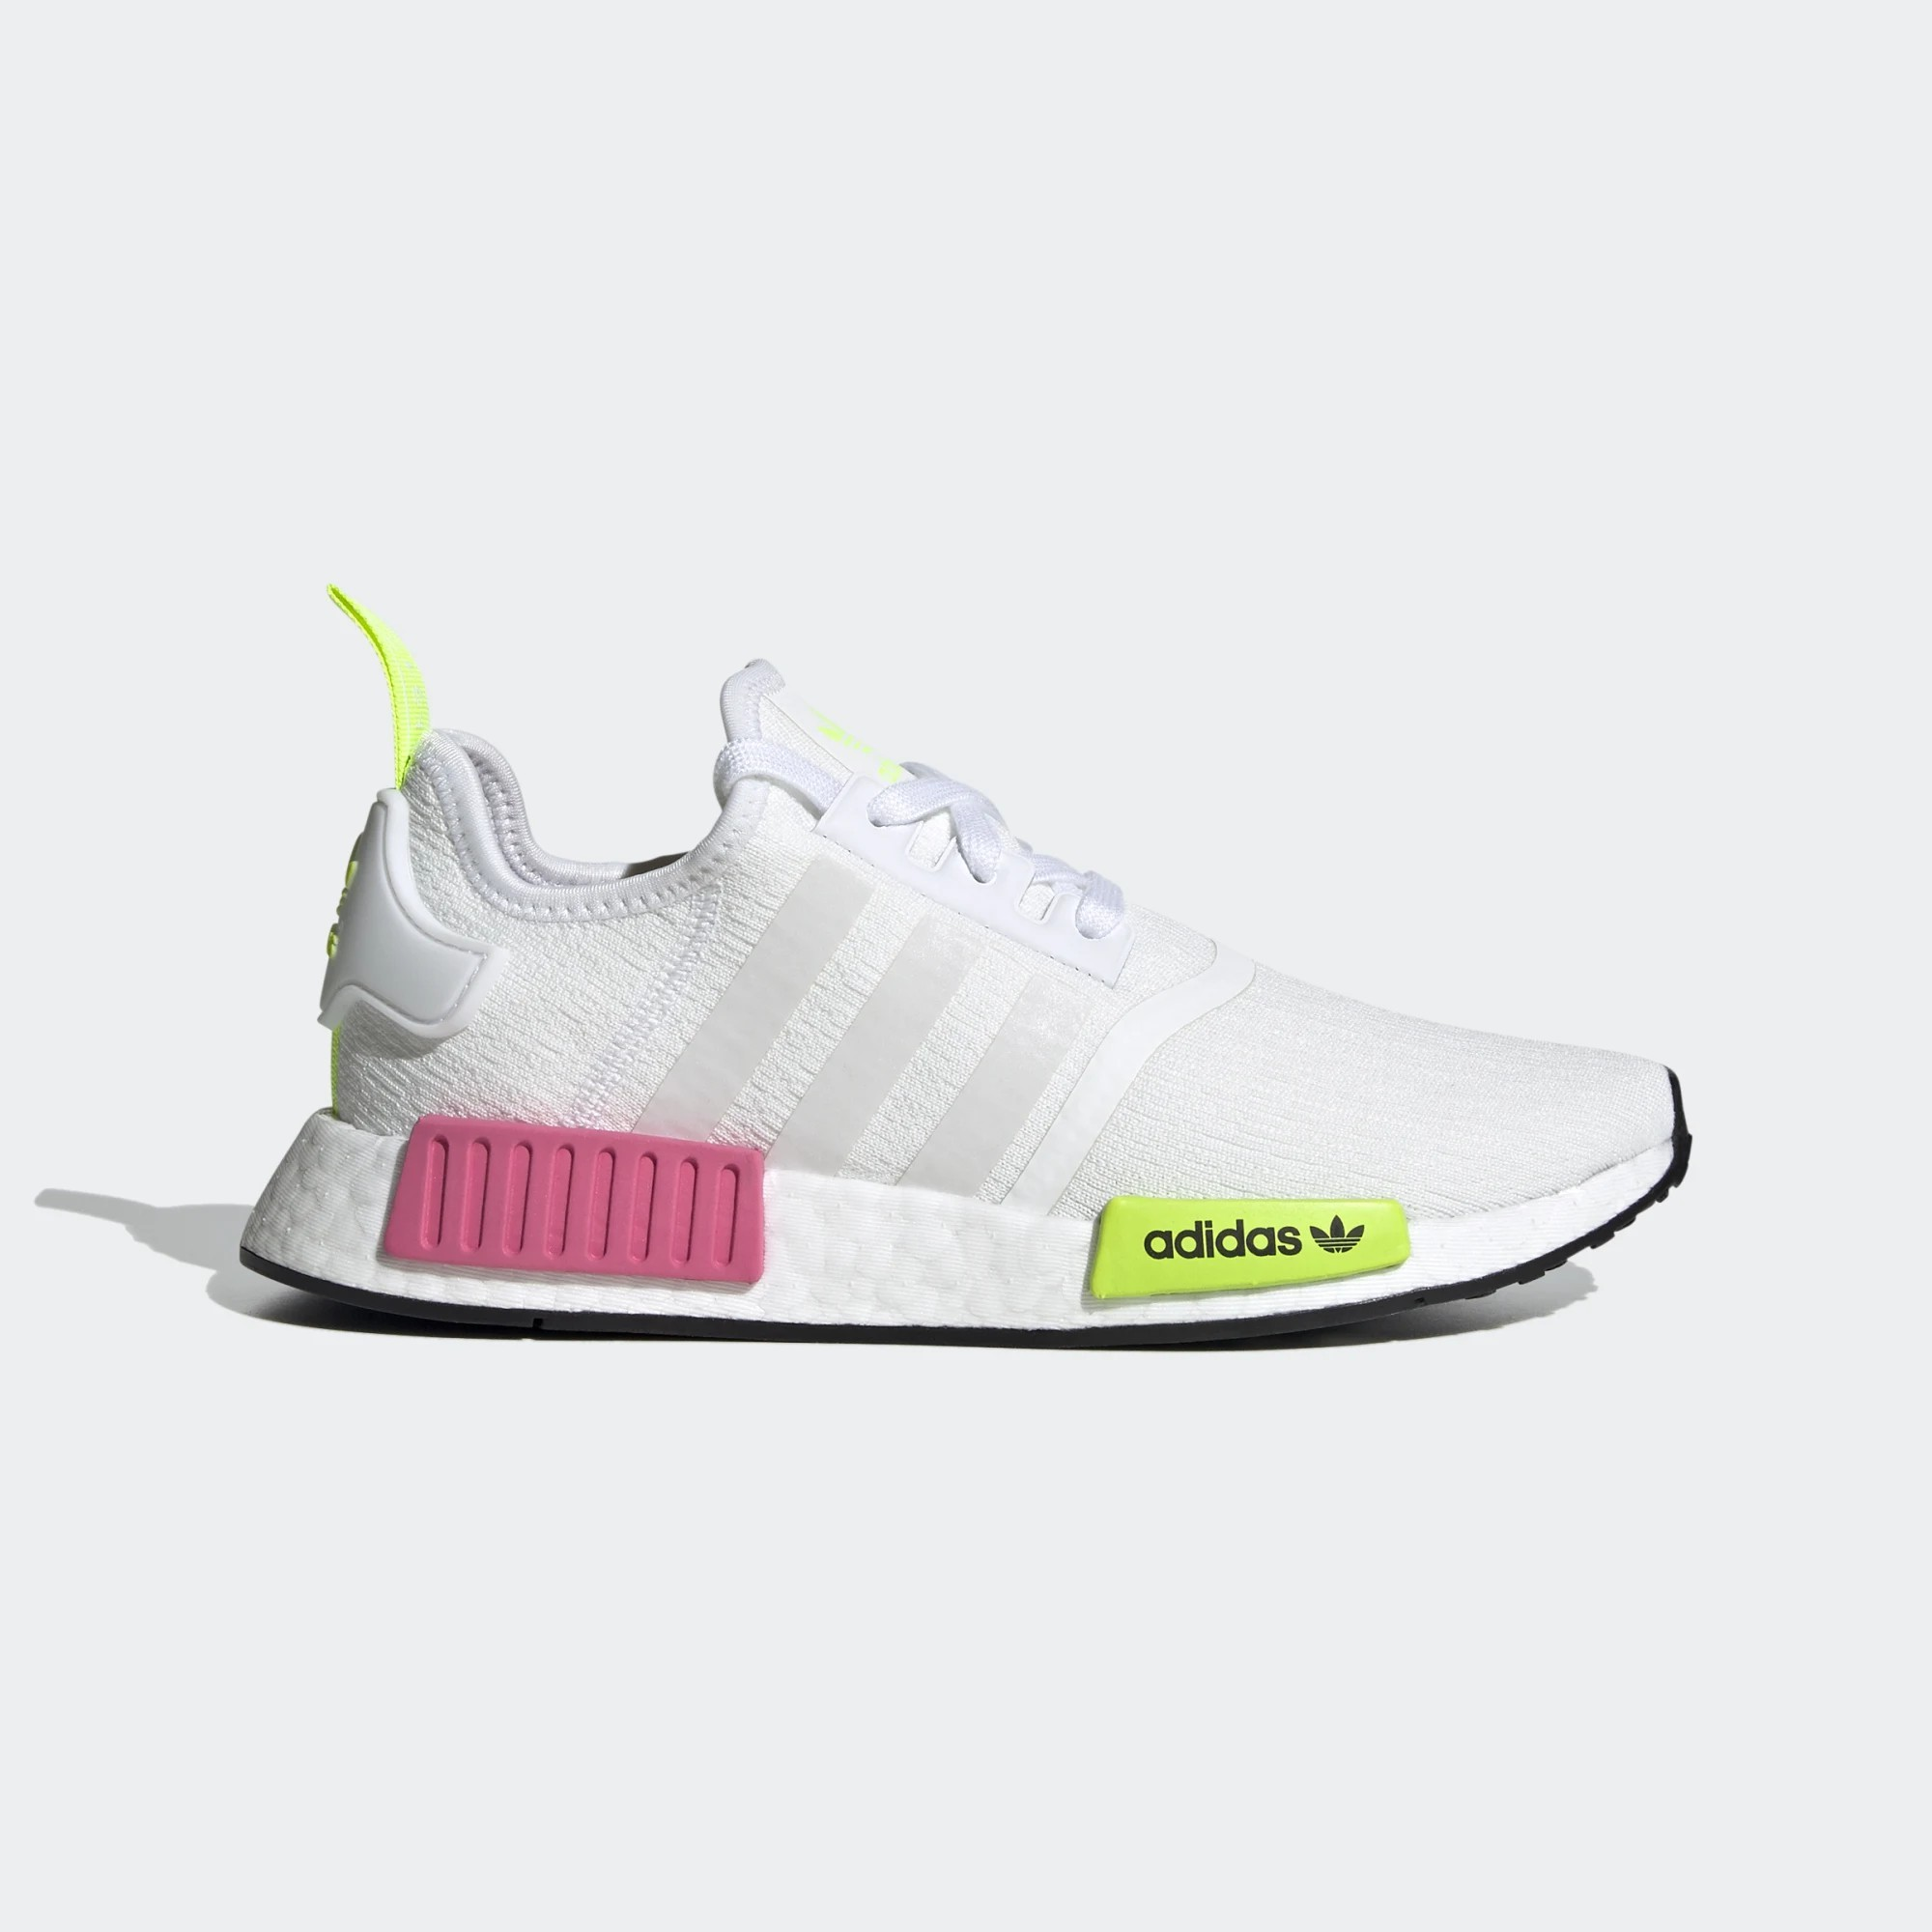 adidas NMD_R1 Shoes - White FX0106